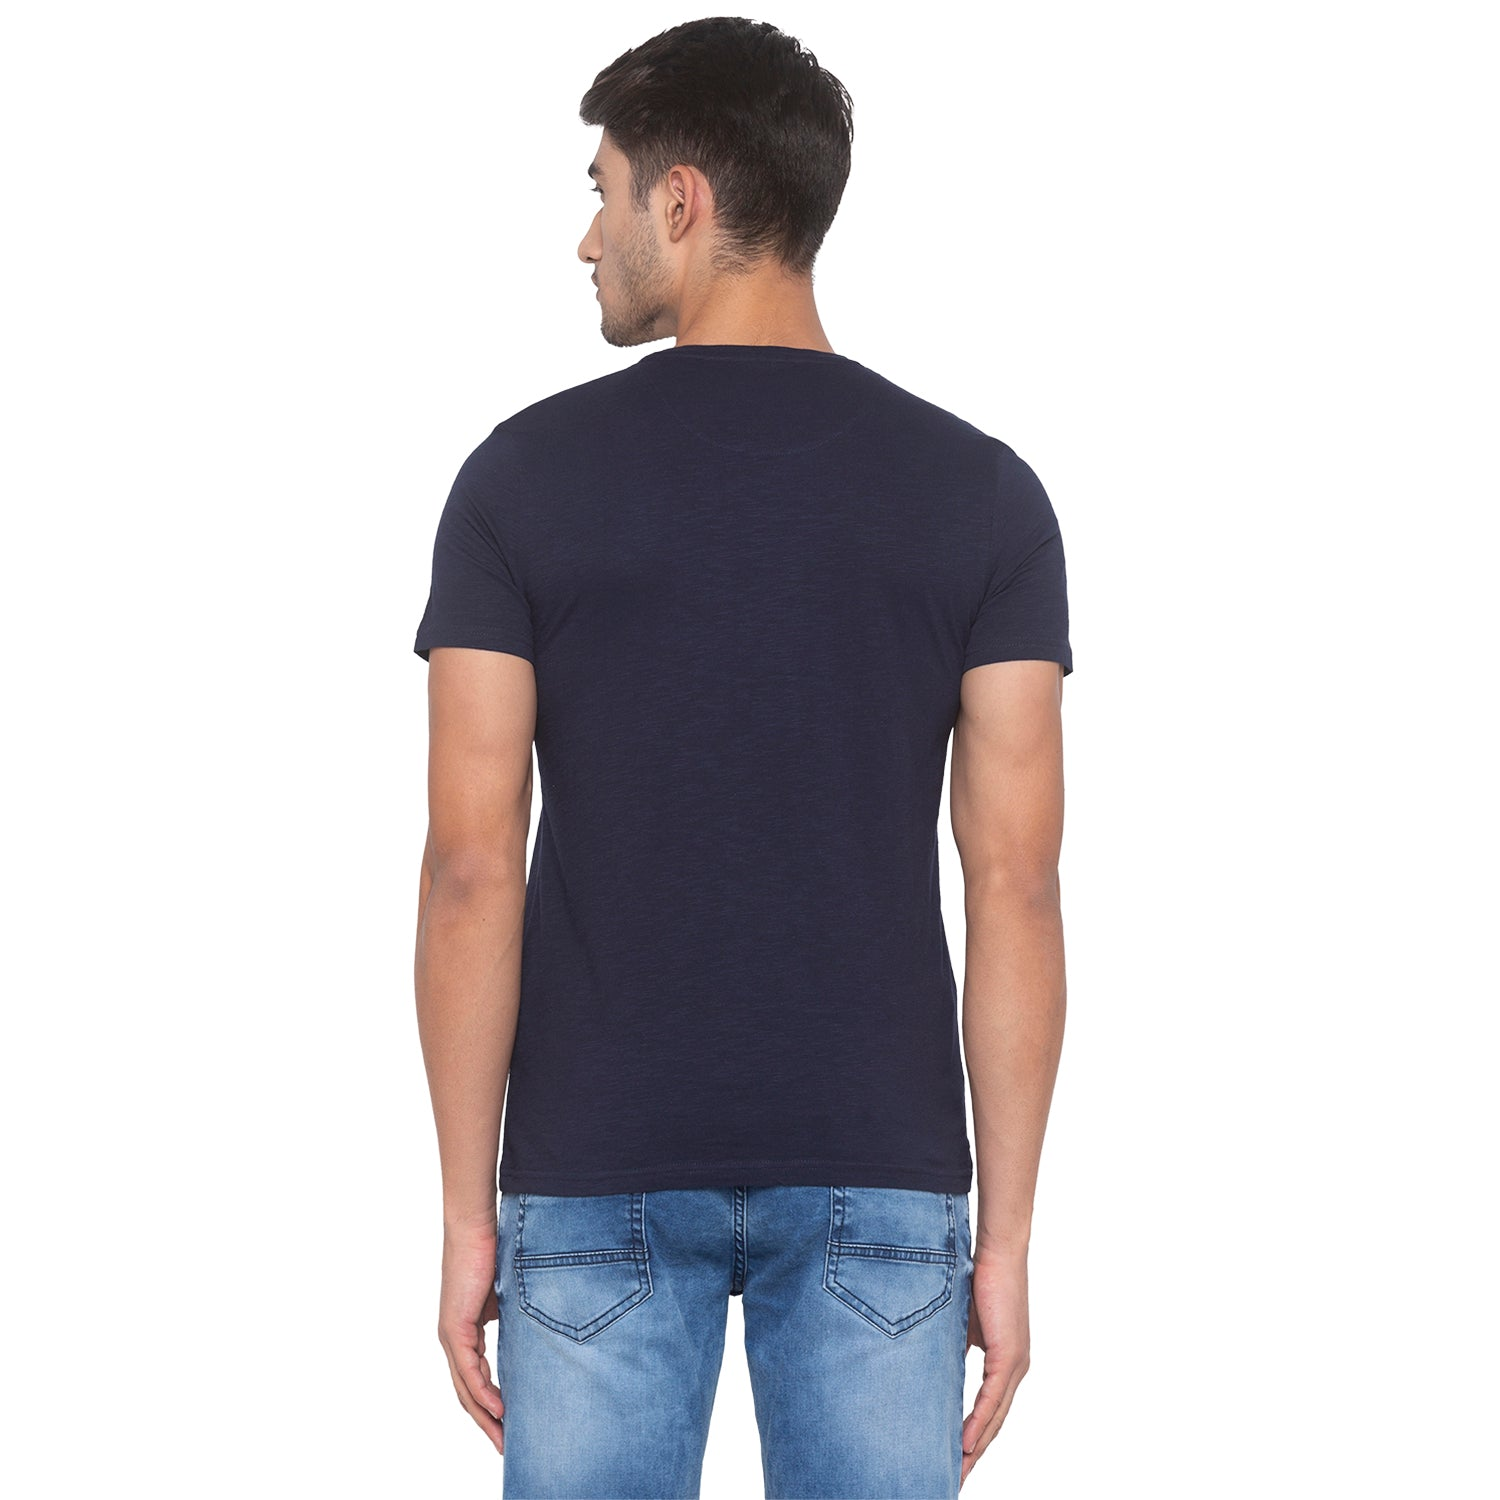 Navy Blue Printed T-Shirt-3